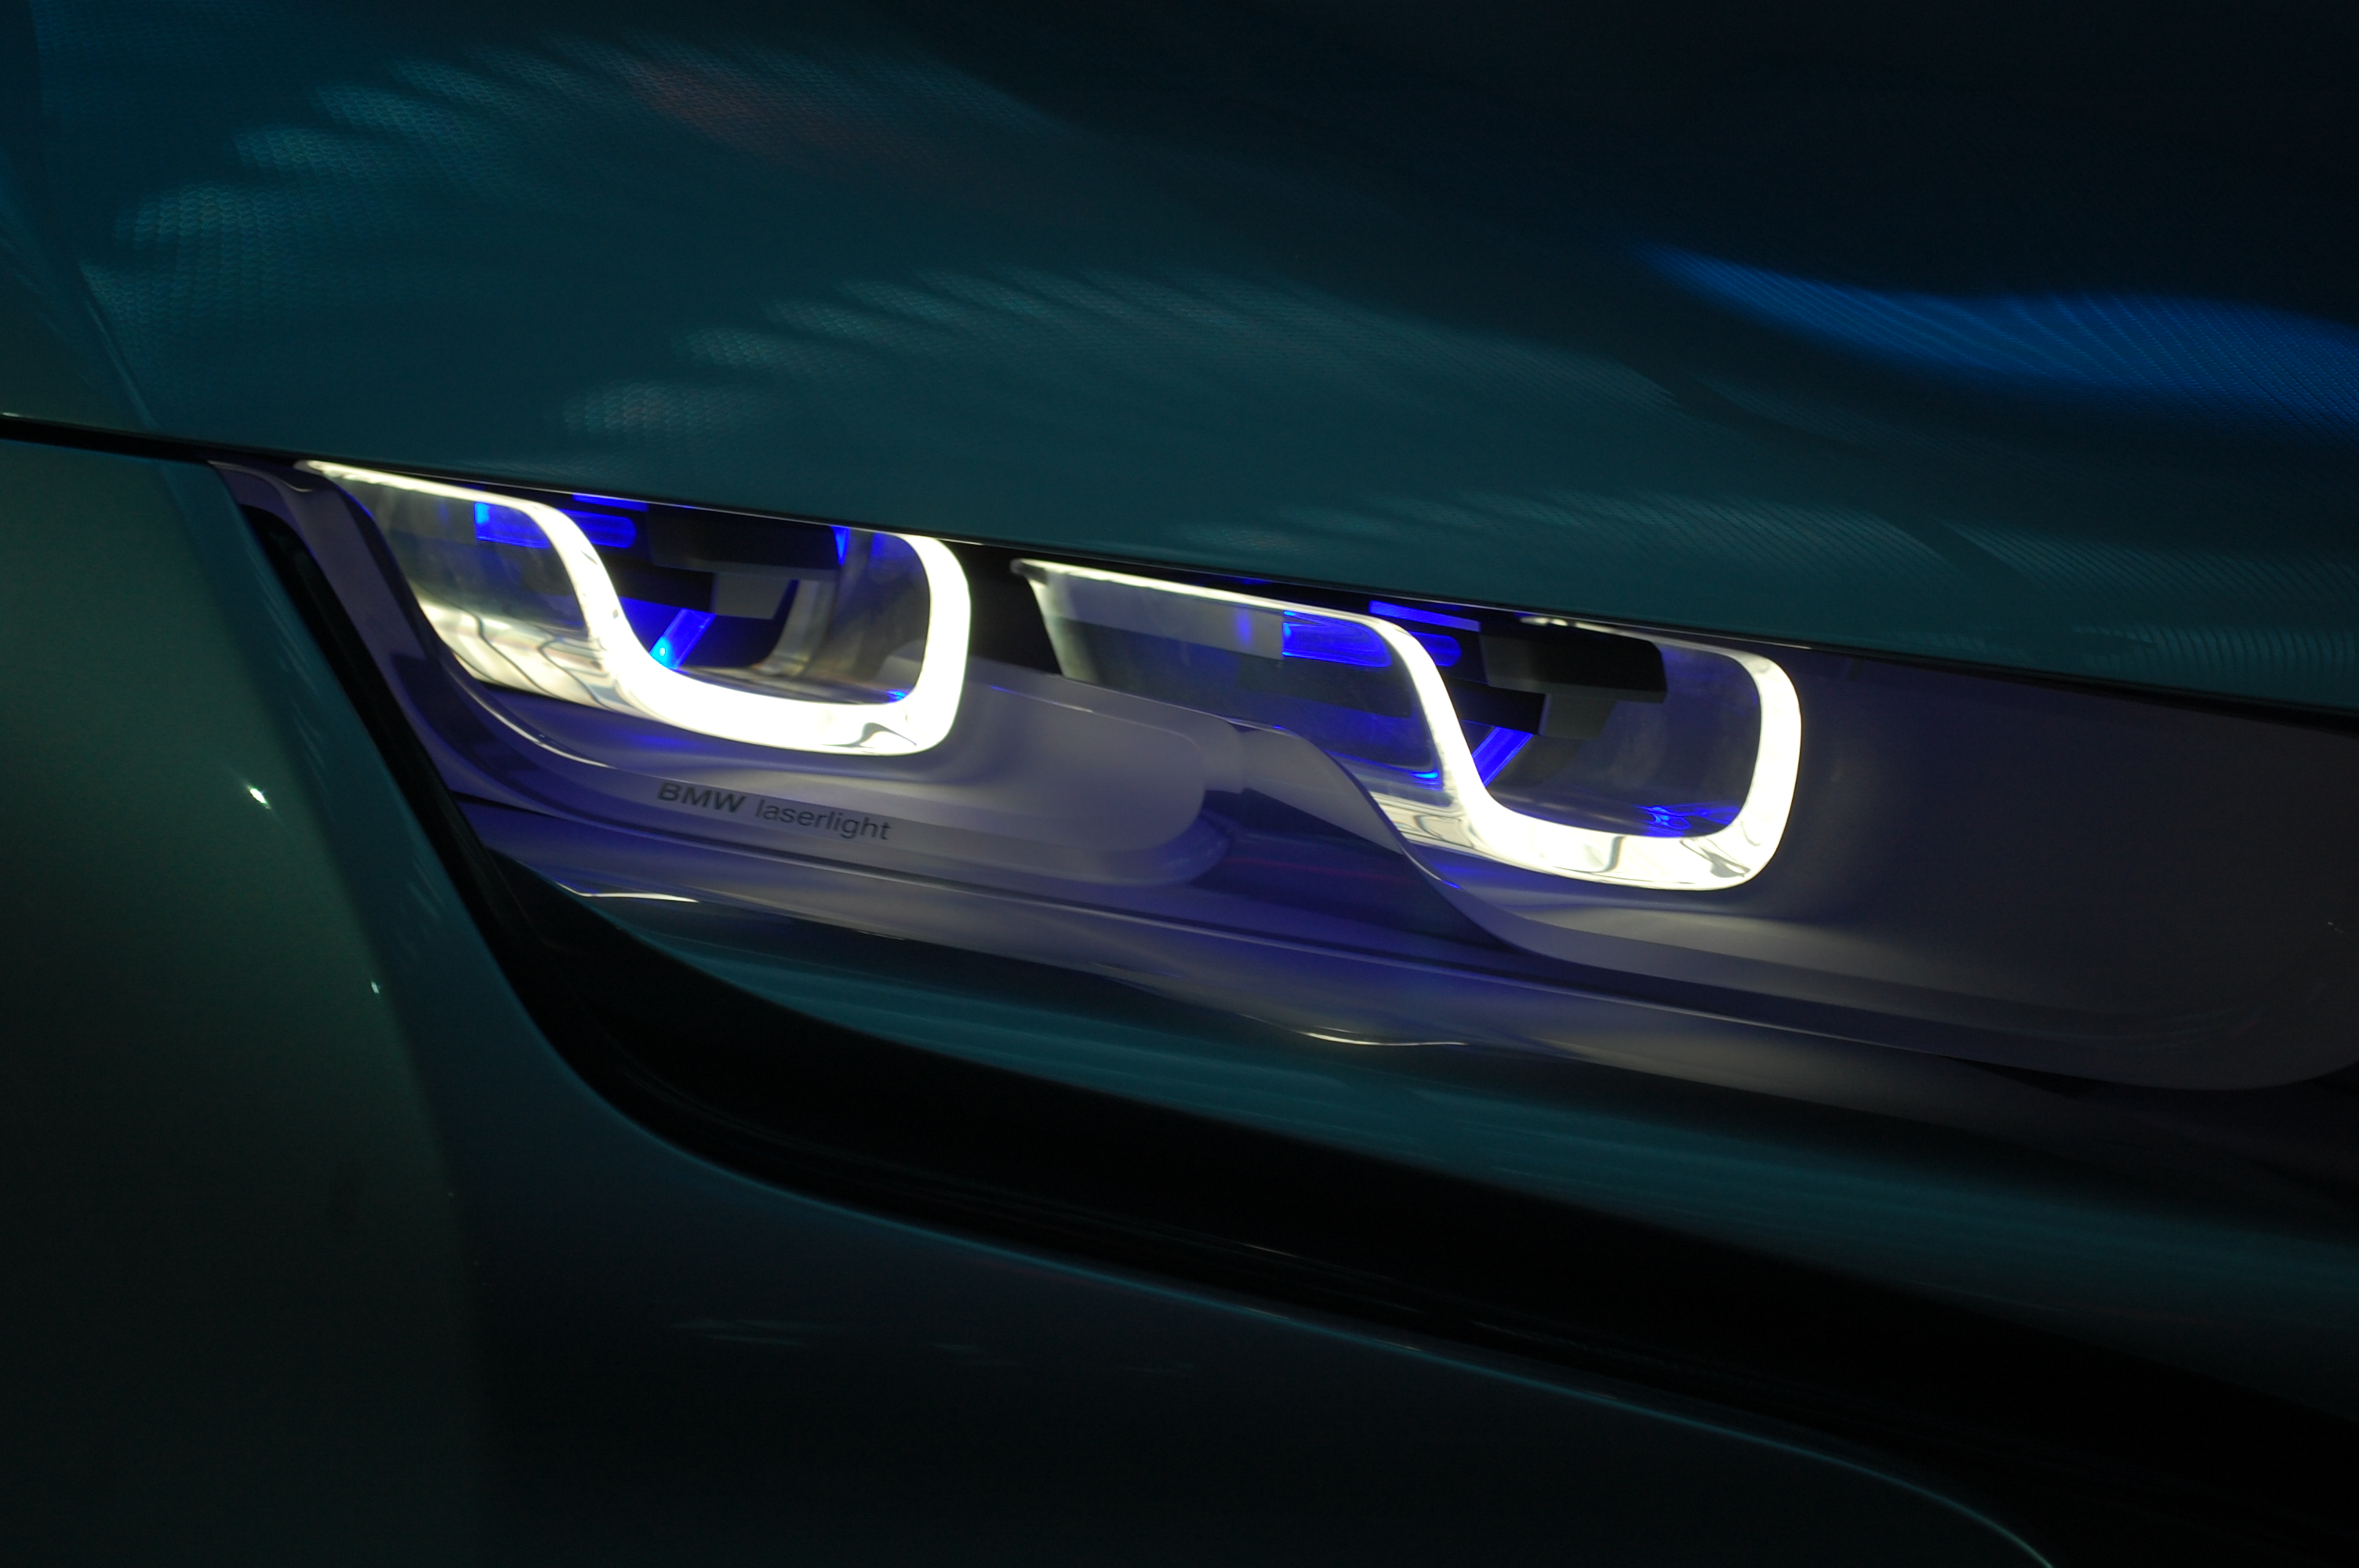 Bmw Now Developing Production Laser Headlight Tech